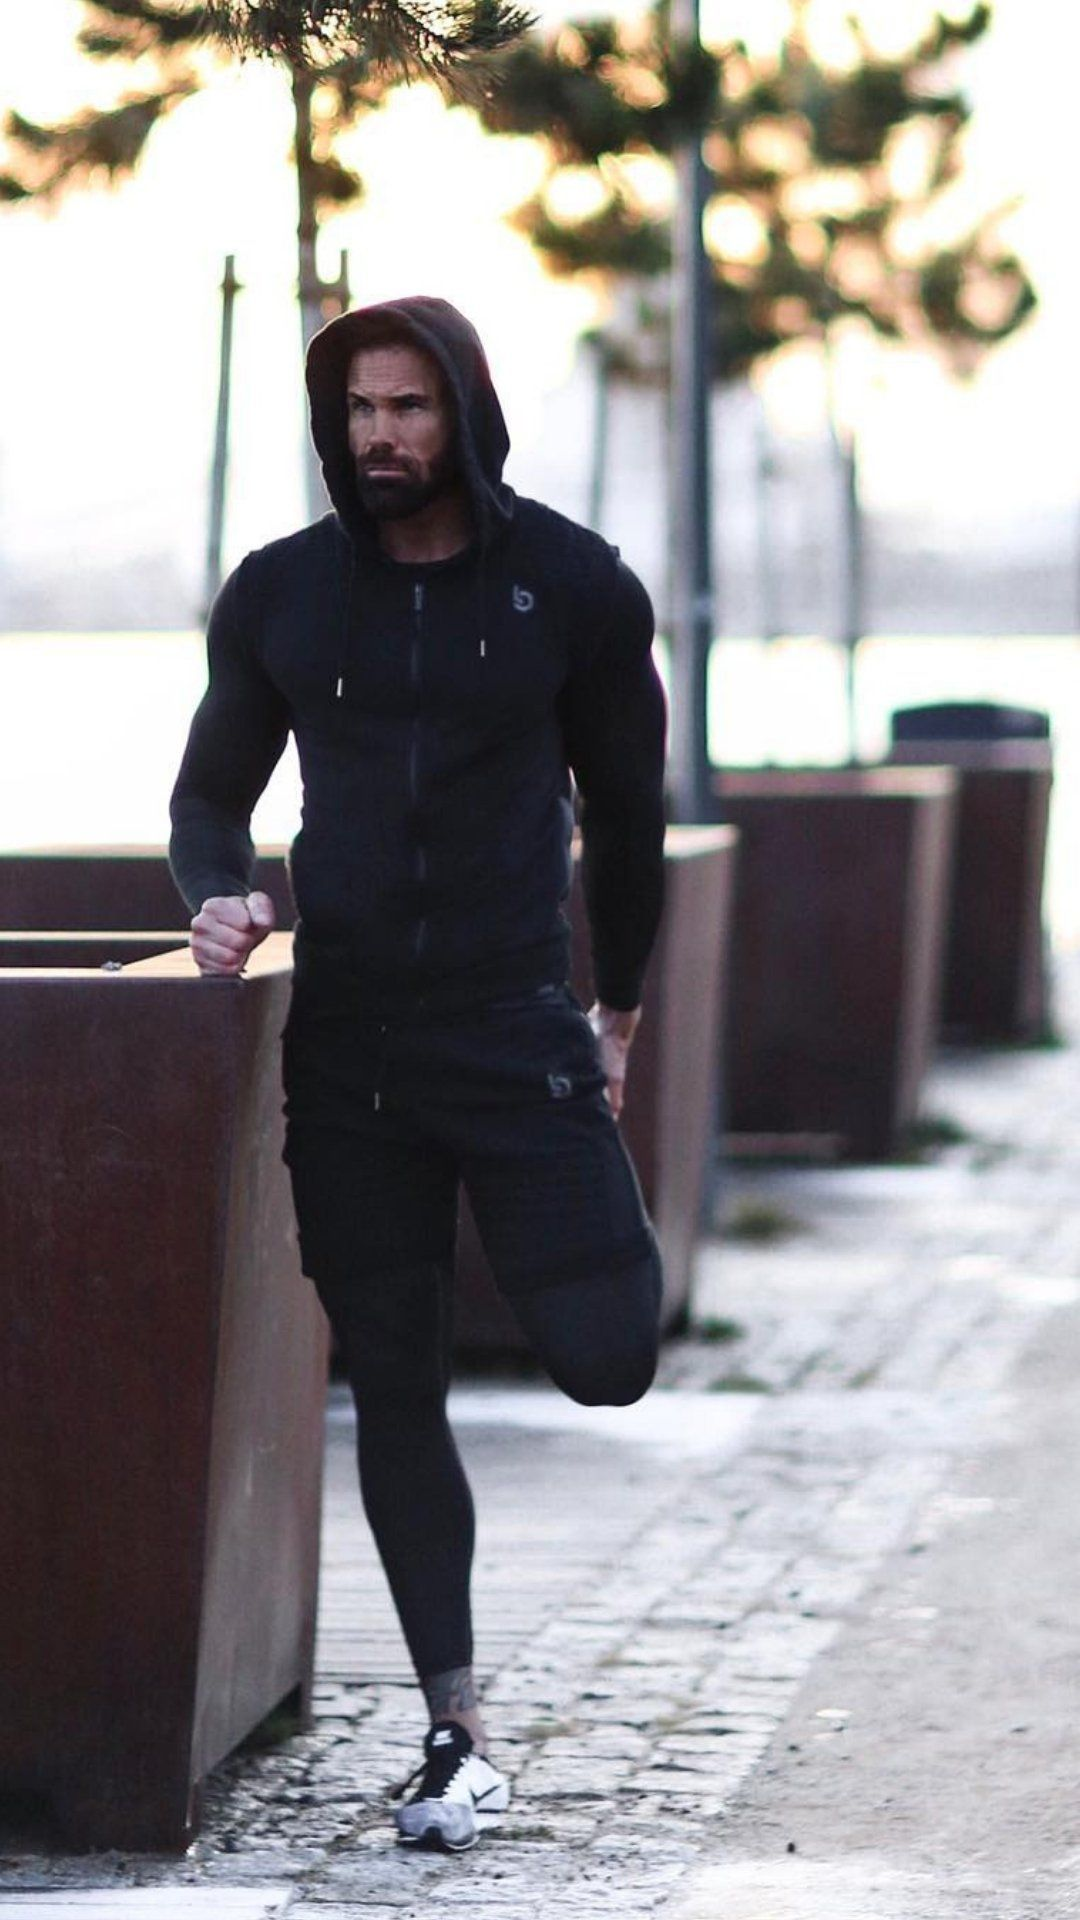 5 fitness outfits that make you want to exercise   - Crossfitout - #Crossfitout #Exercise #Fitness #...